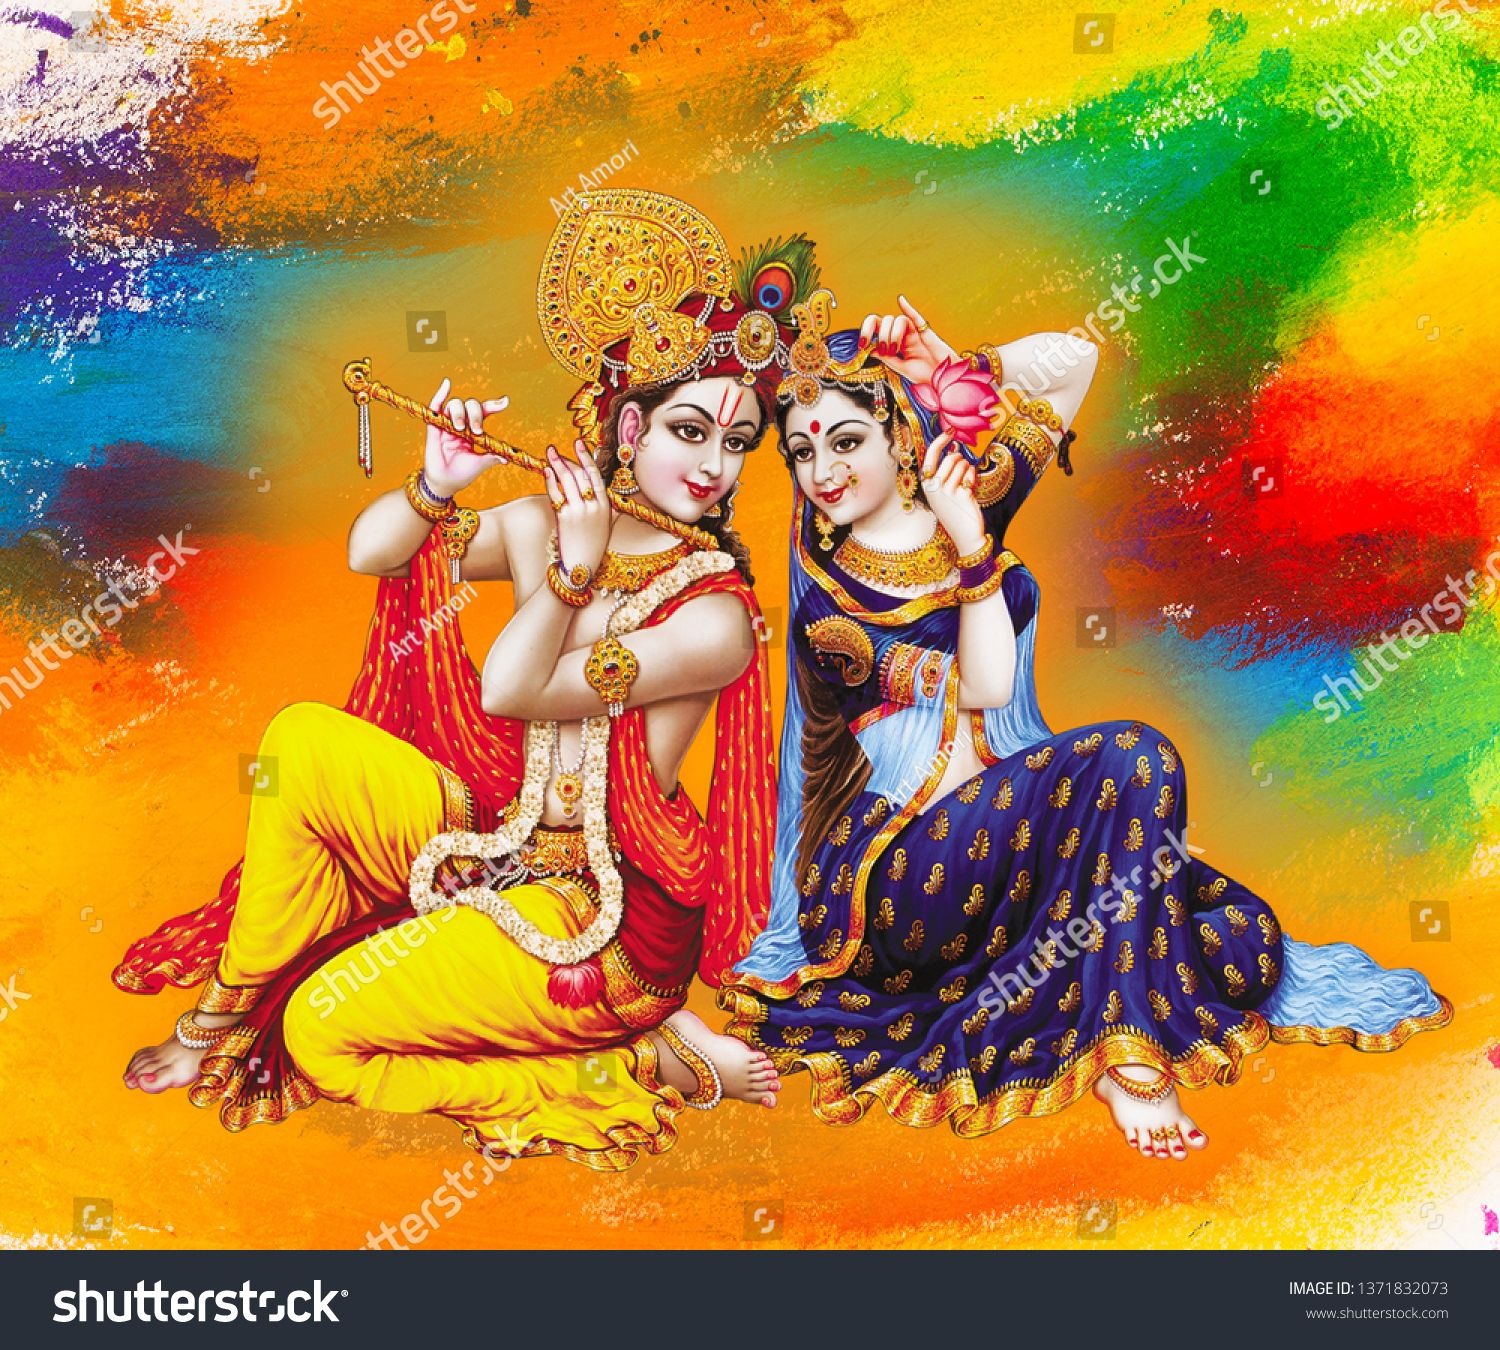 Illustration Of Colorful Lord Radha Krishna With Flute On Decorative Abstract Background 3d Wallpaper Moder City Wallpaper Modern Artwork Abstract Backgrounds